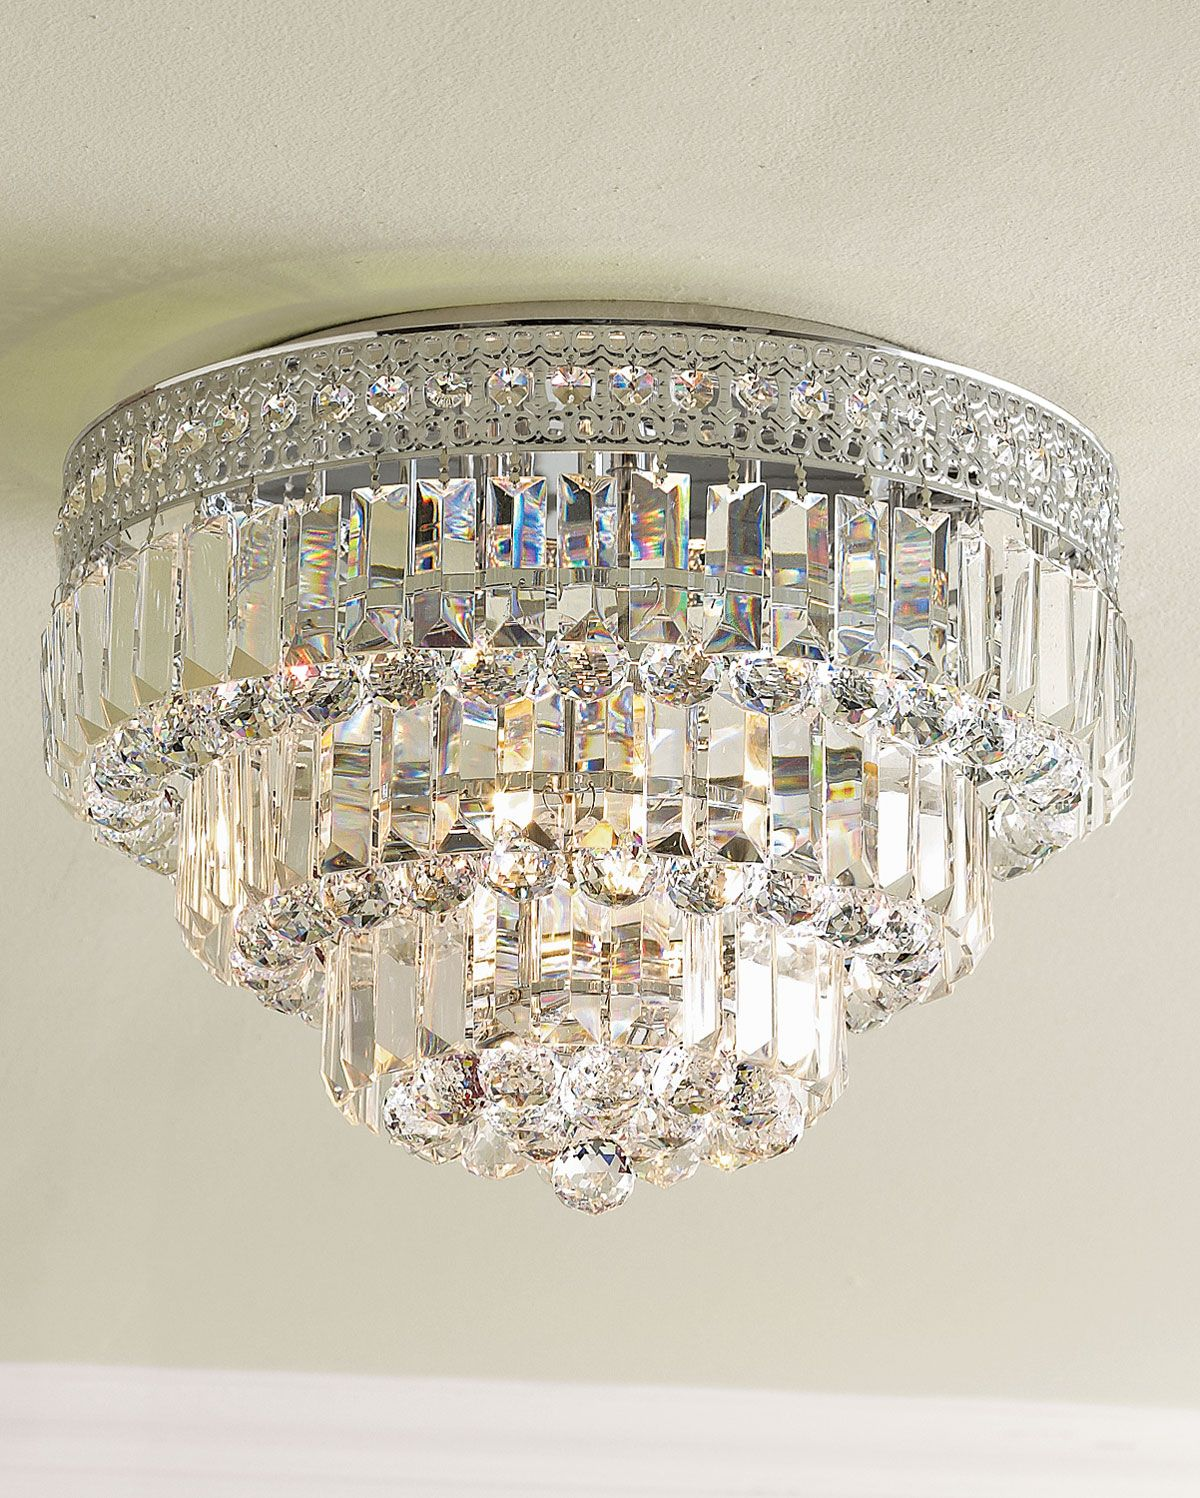 Round Crystal Ceiling Fixture Master Bedroom Lighting Bedroom Light Fixtures Bedroom Ceiling Light